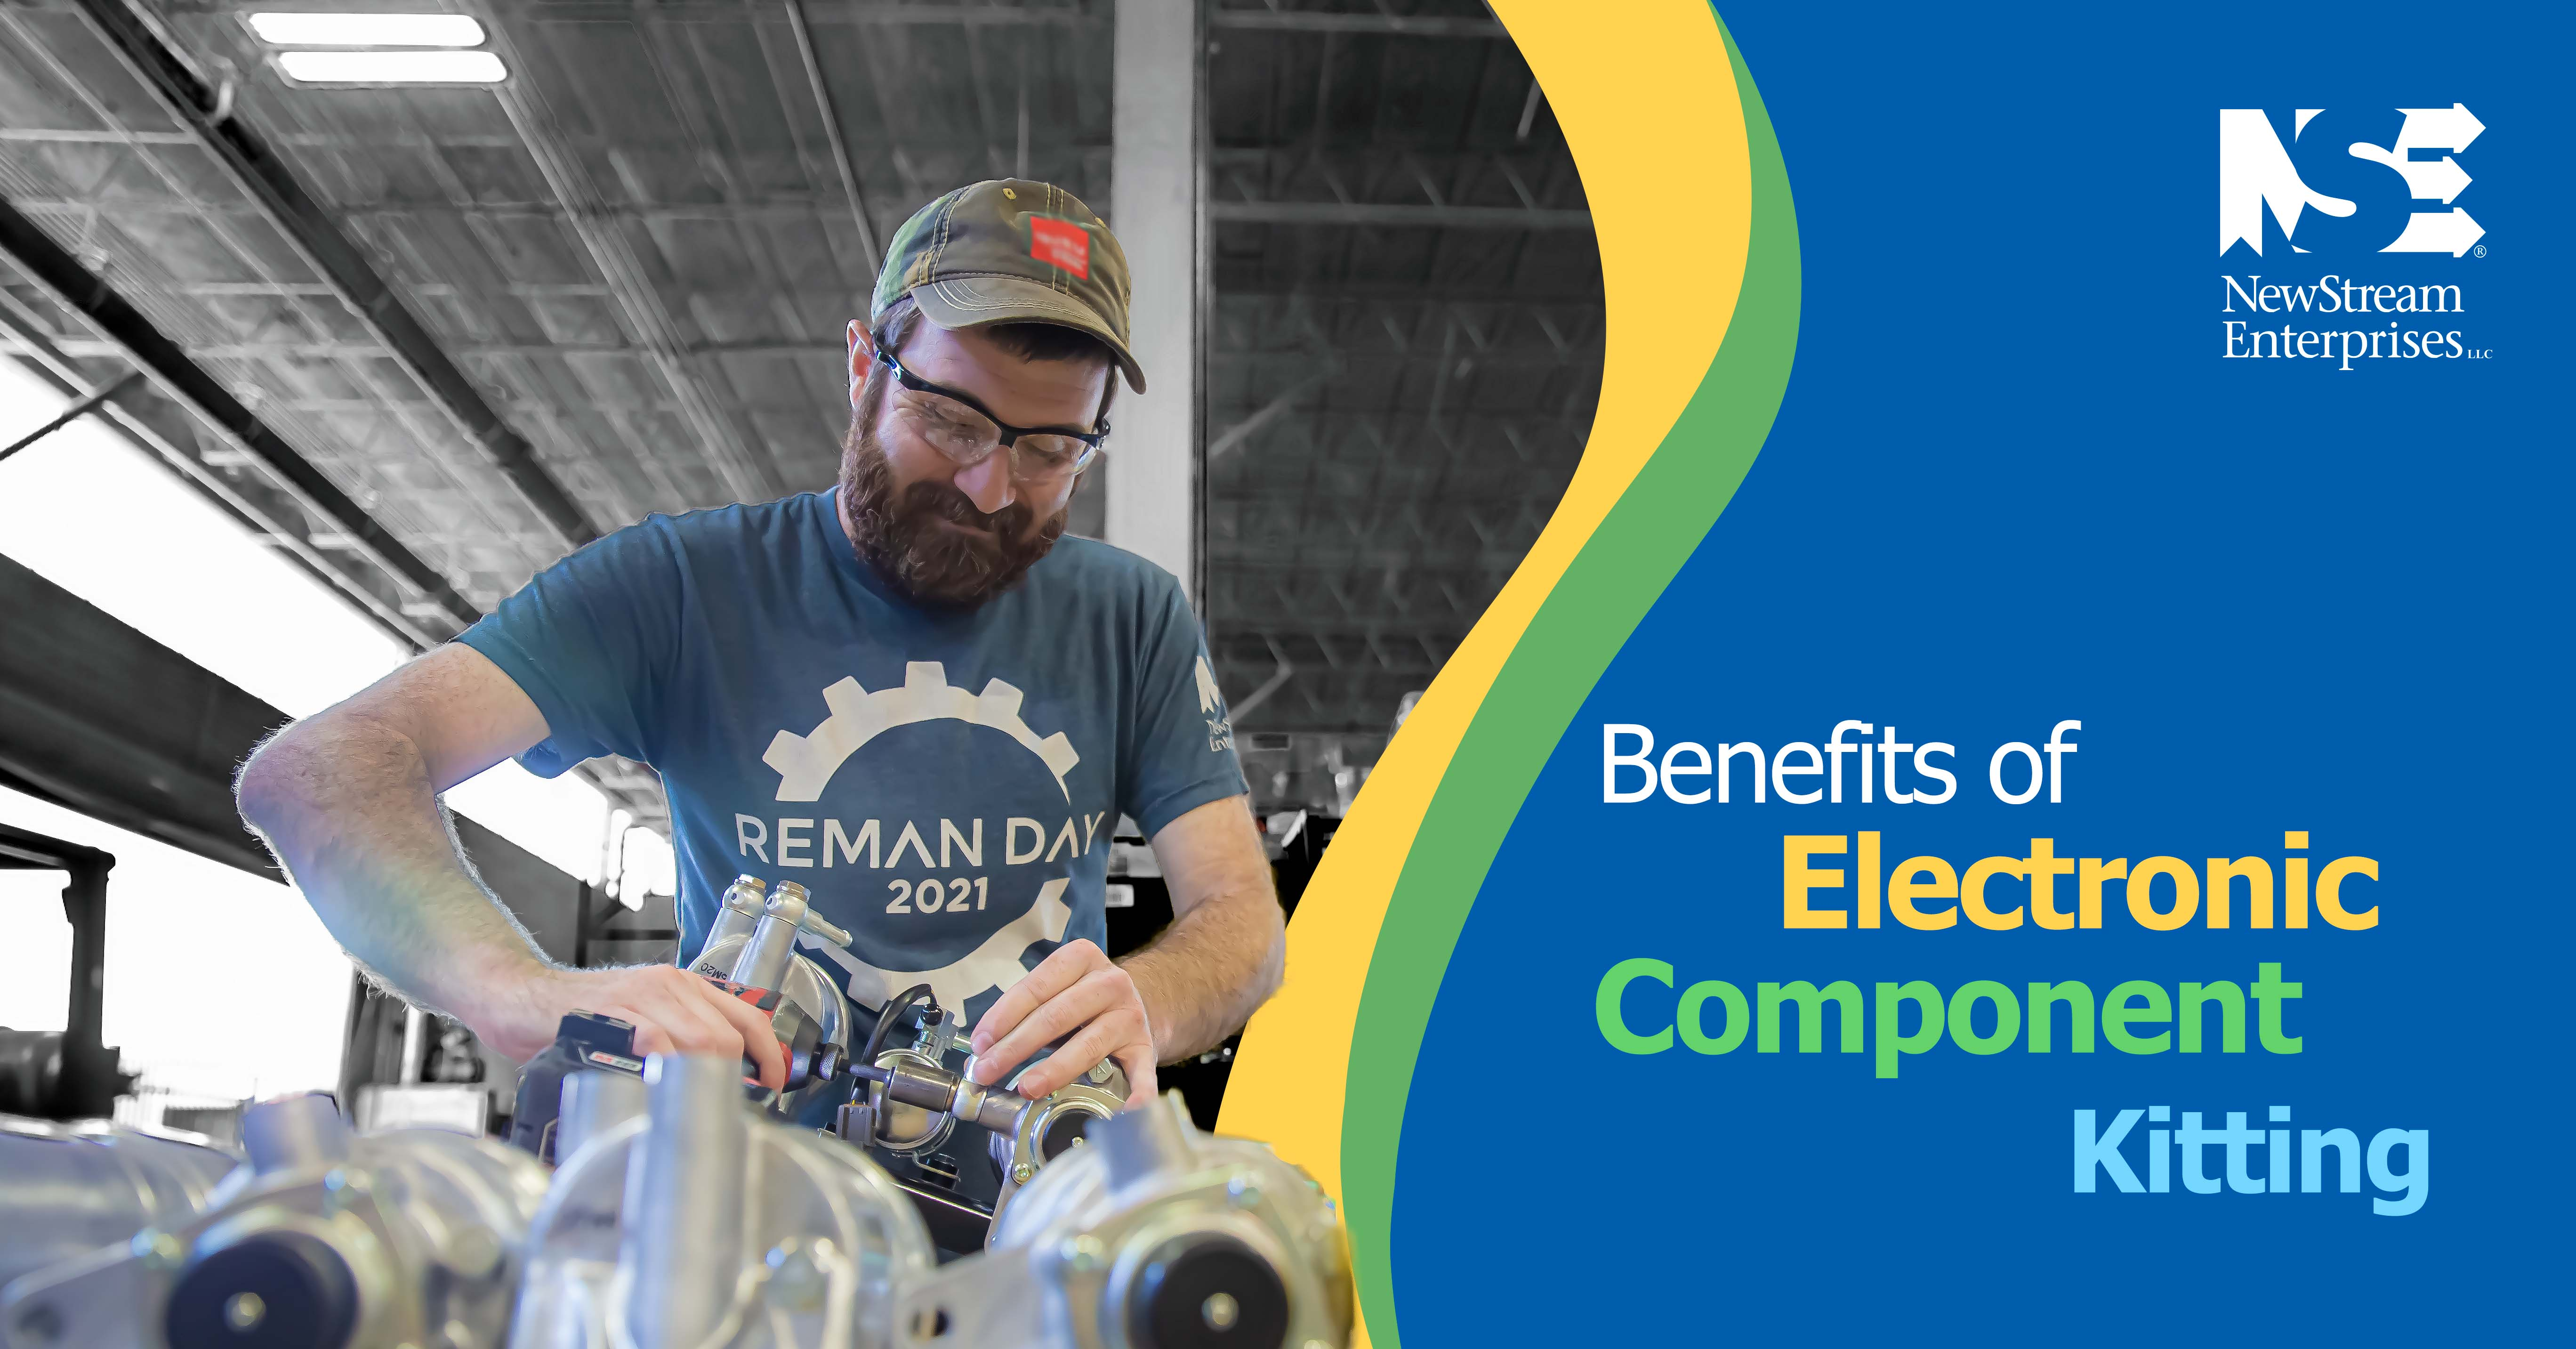 Benefits of Electronic Components Blog Title Graphic